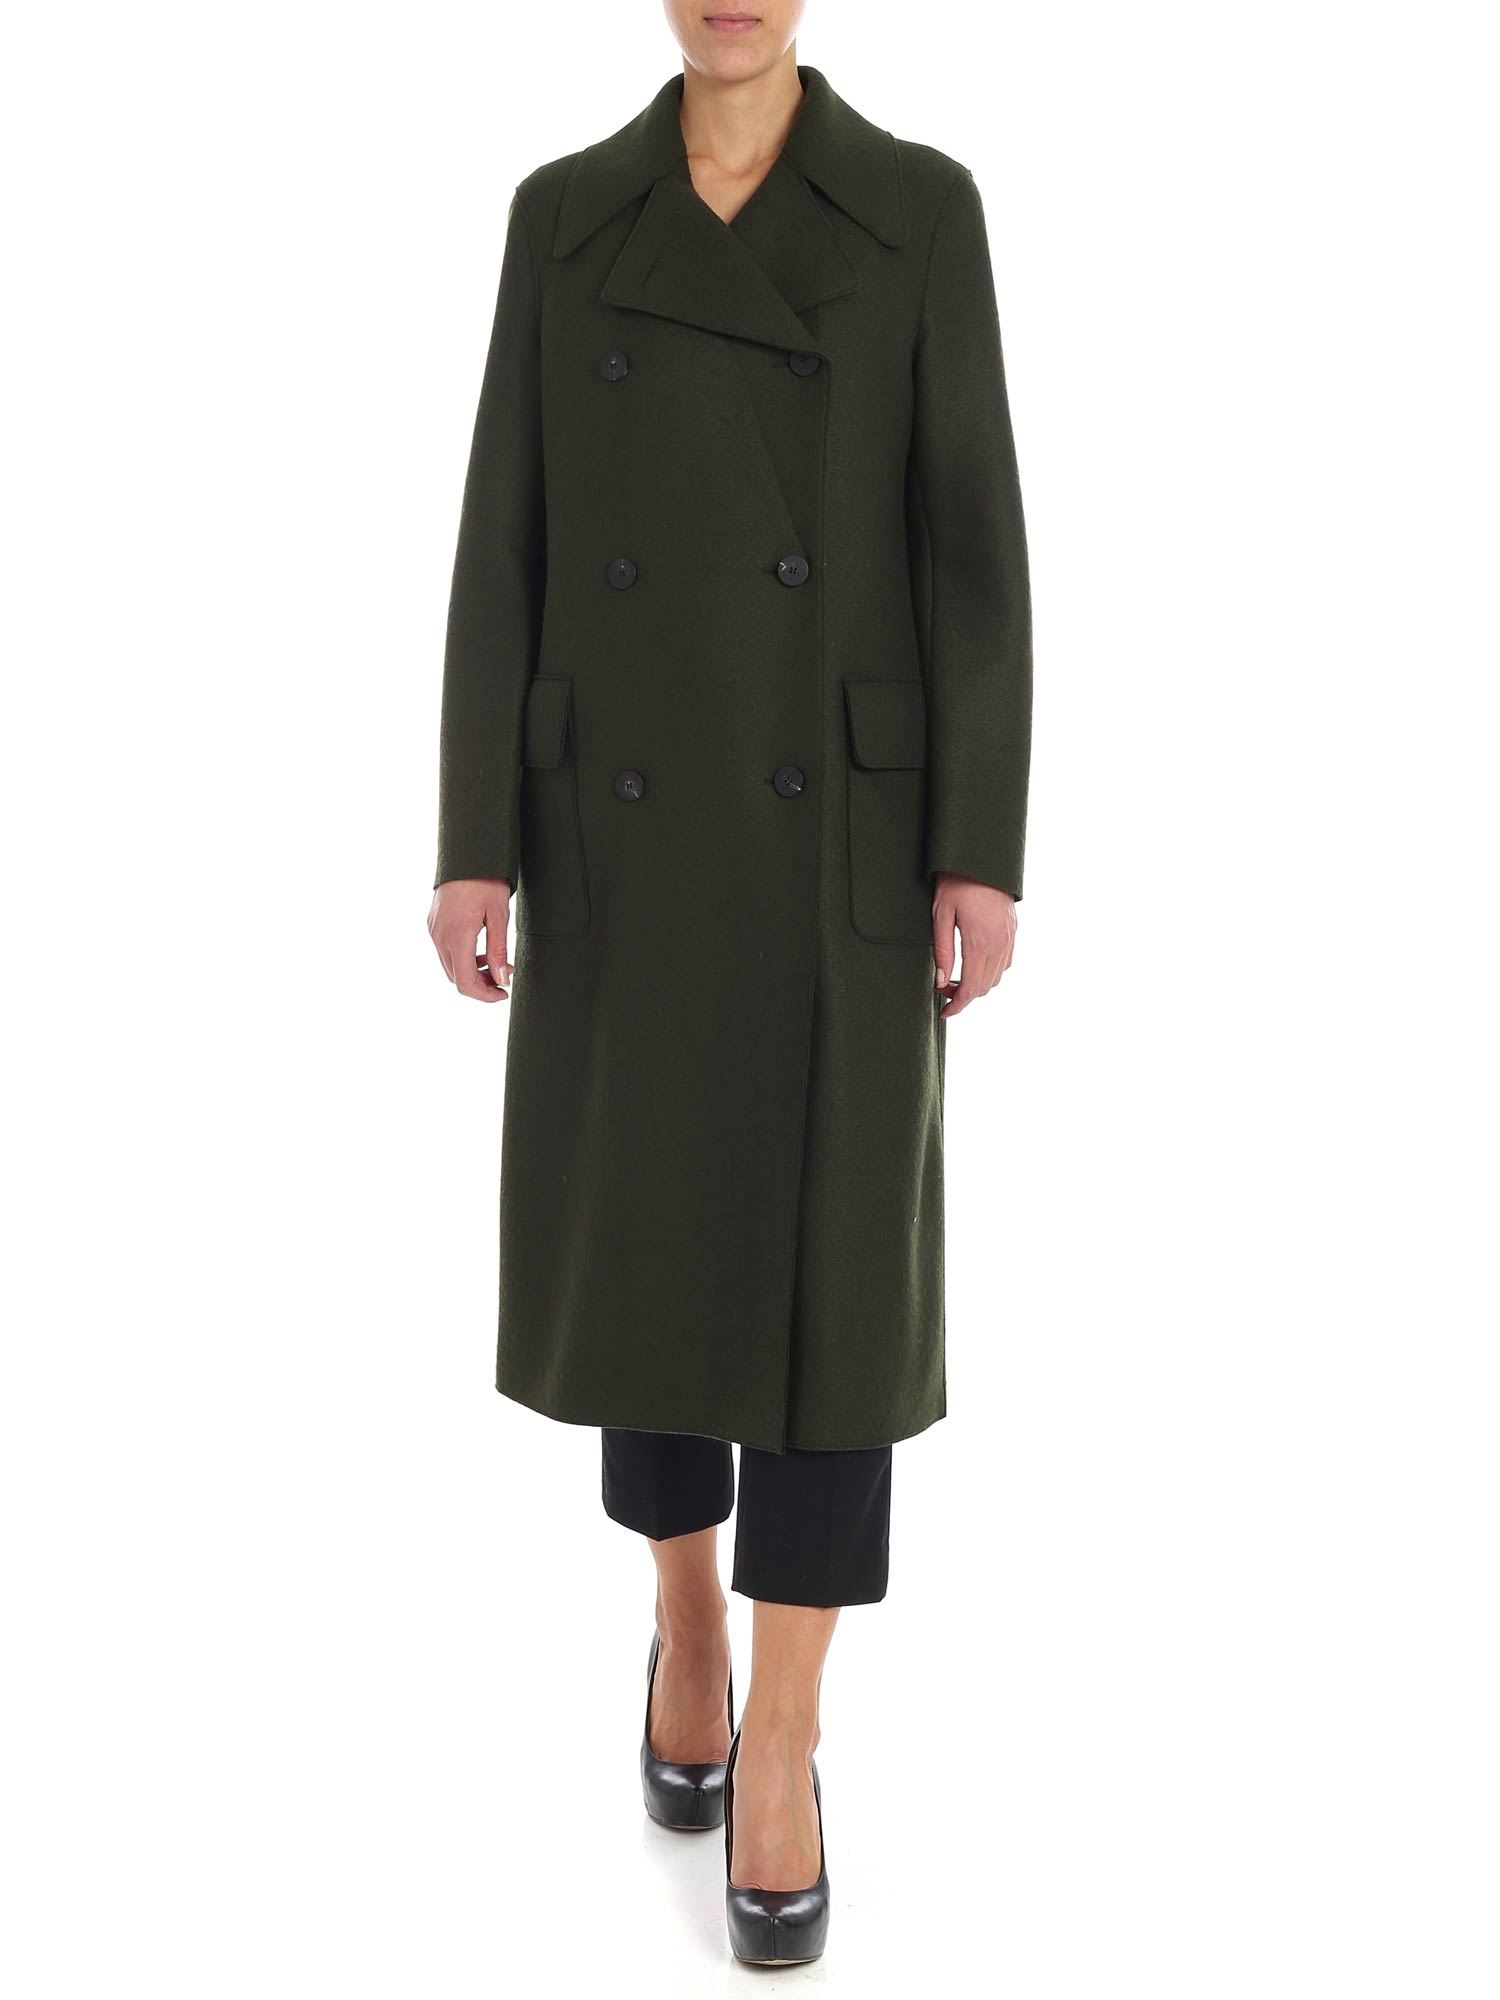 Harris Wharf London – Coat